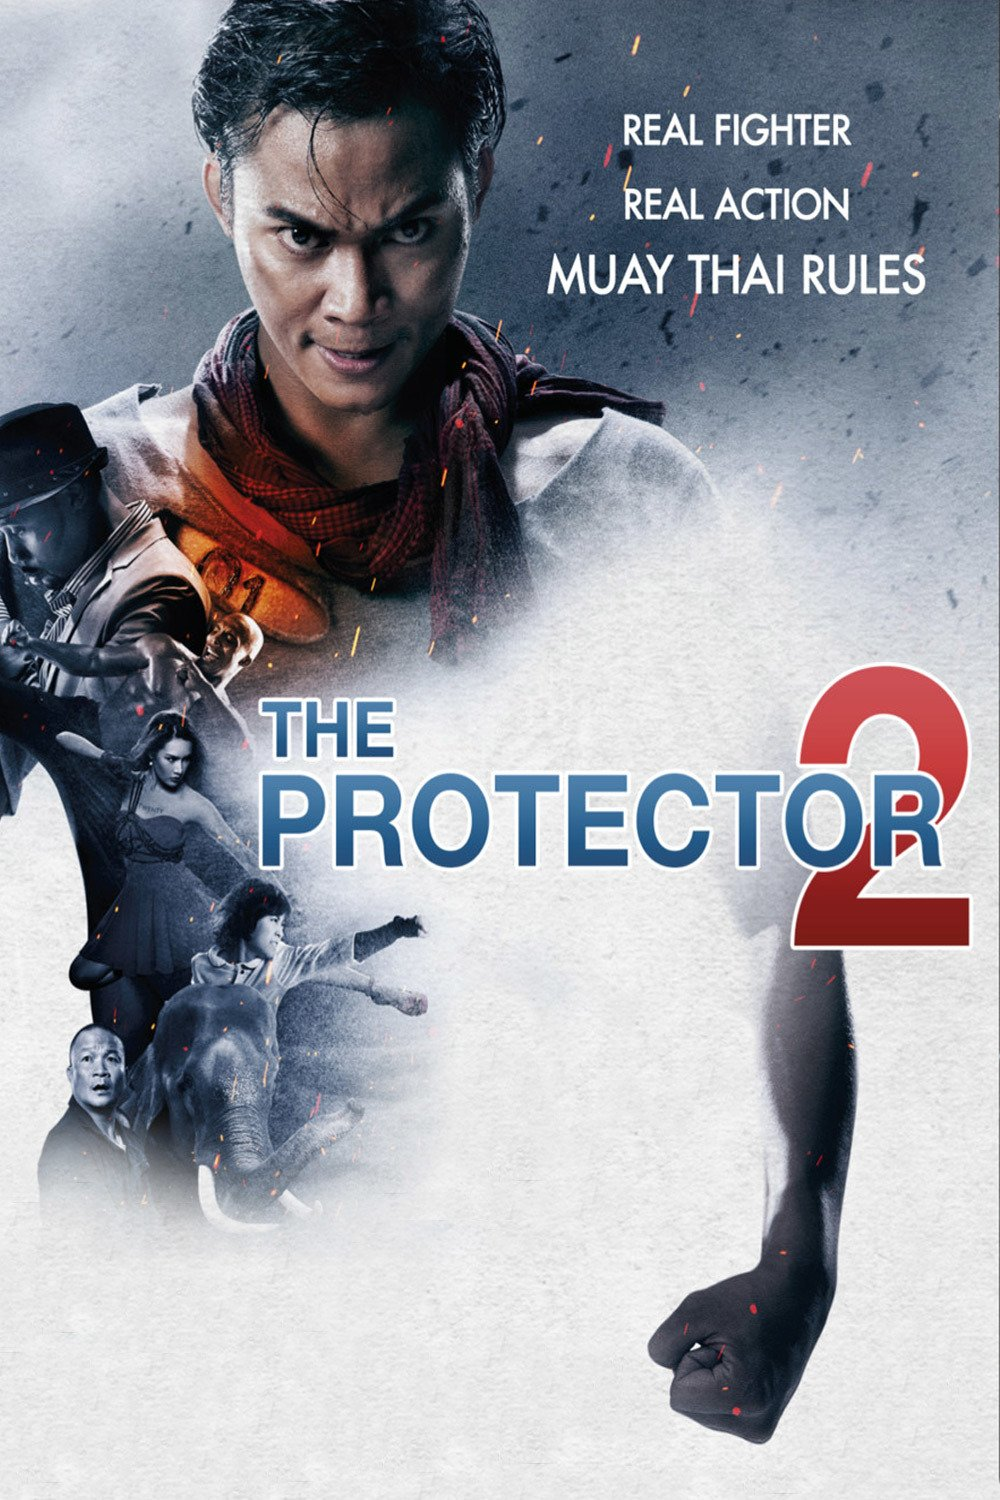 The Protector 2 Review